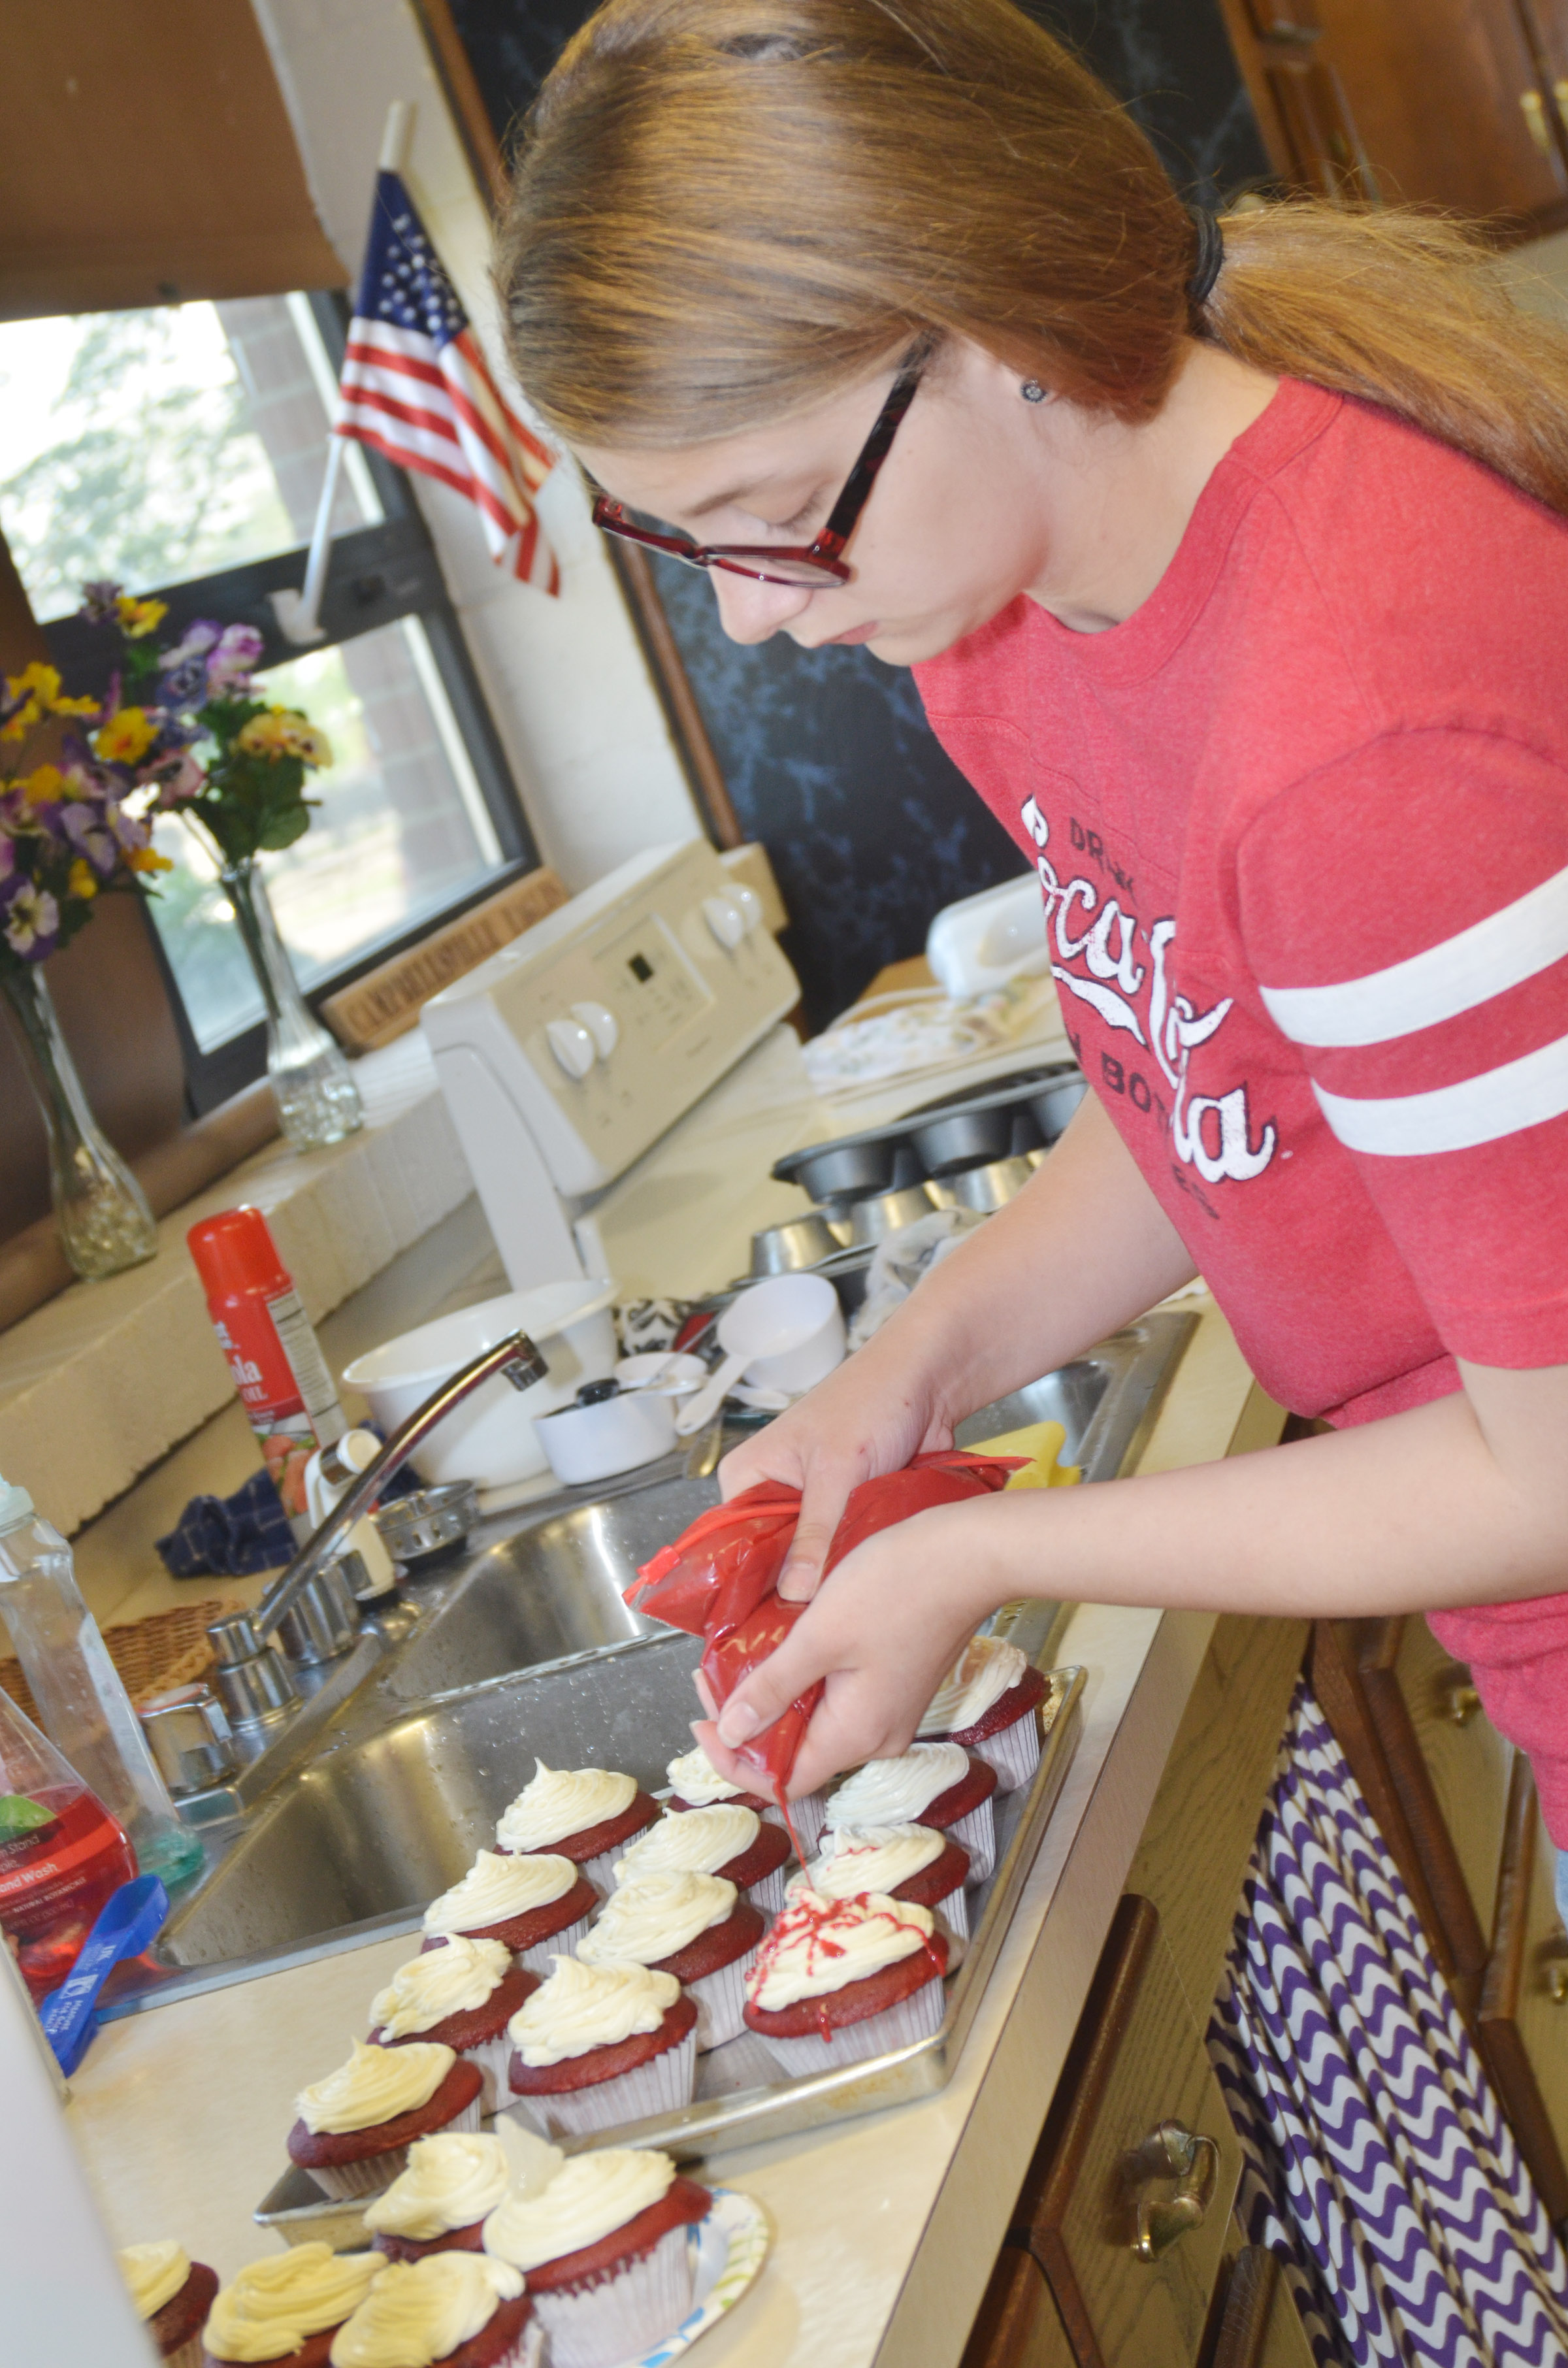 CHS senior Alexis Underwood decorates the red velvet cupcakes she made for her final project.